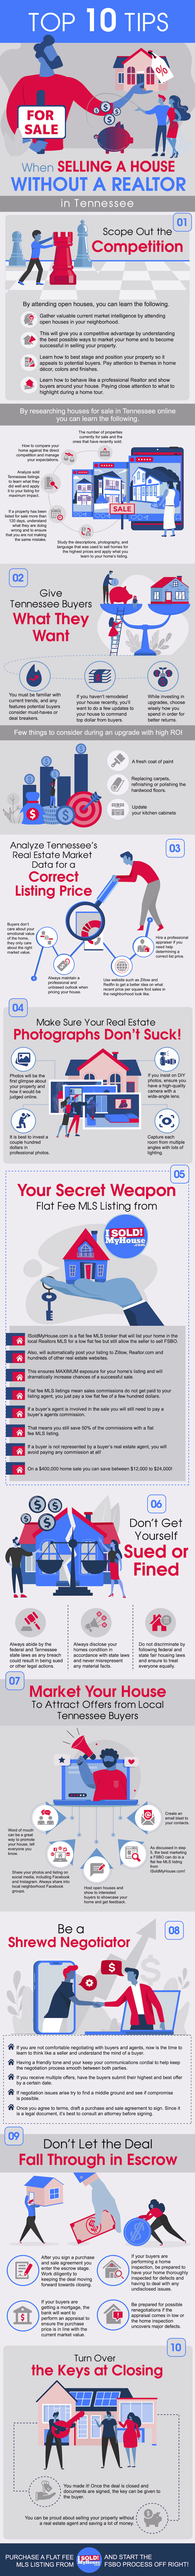 infographic of the 10 steps to sell a house in tennessee without an agent